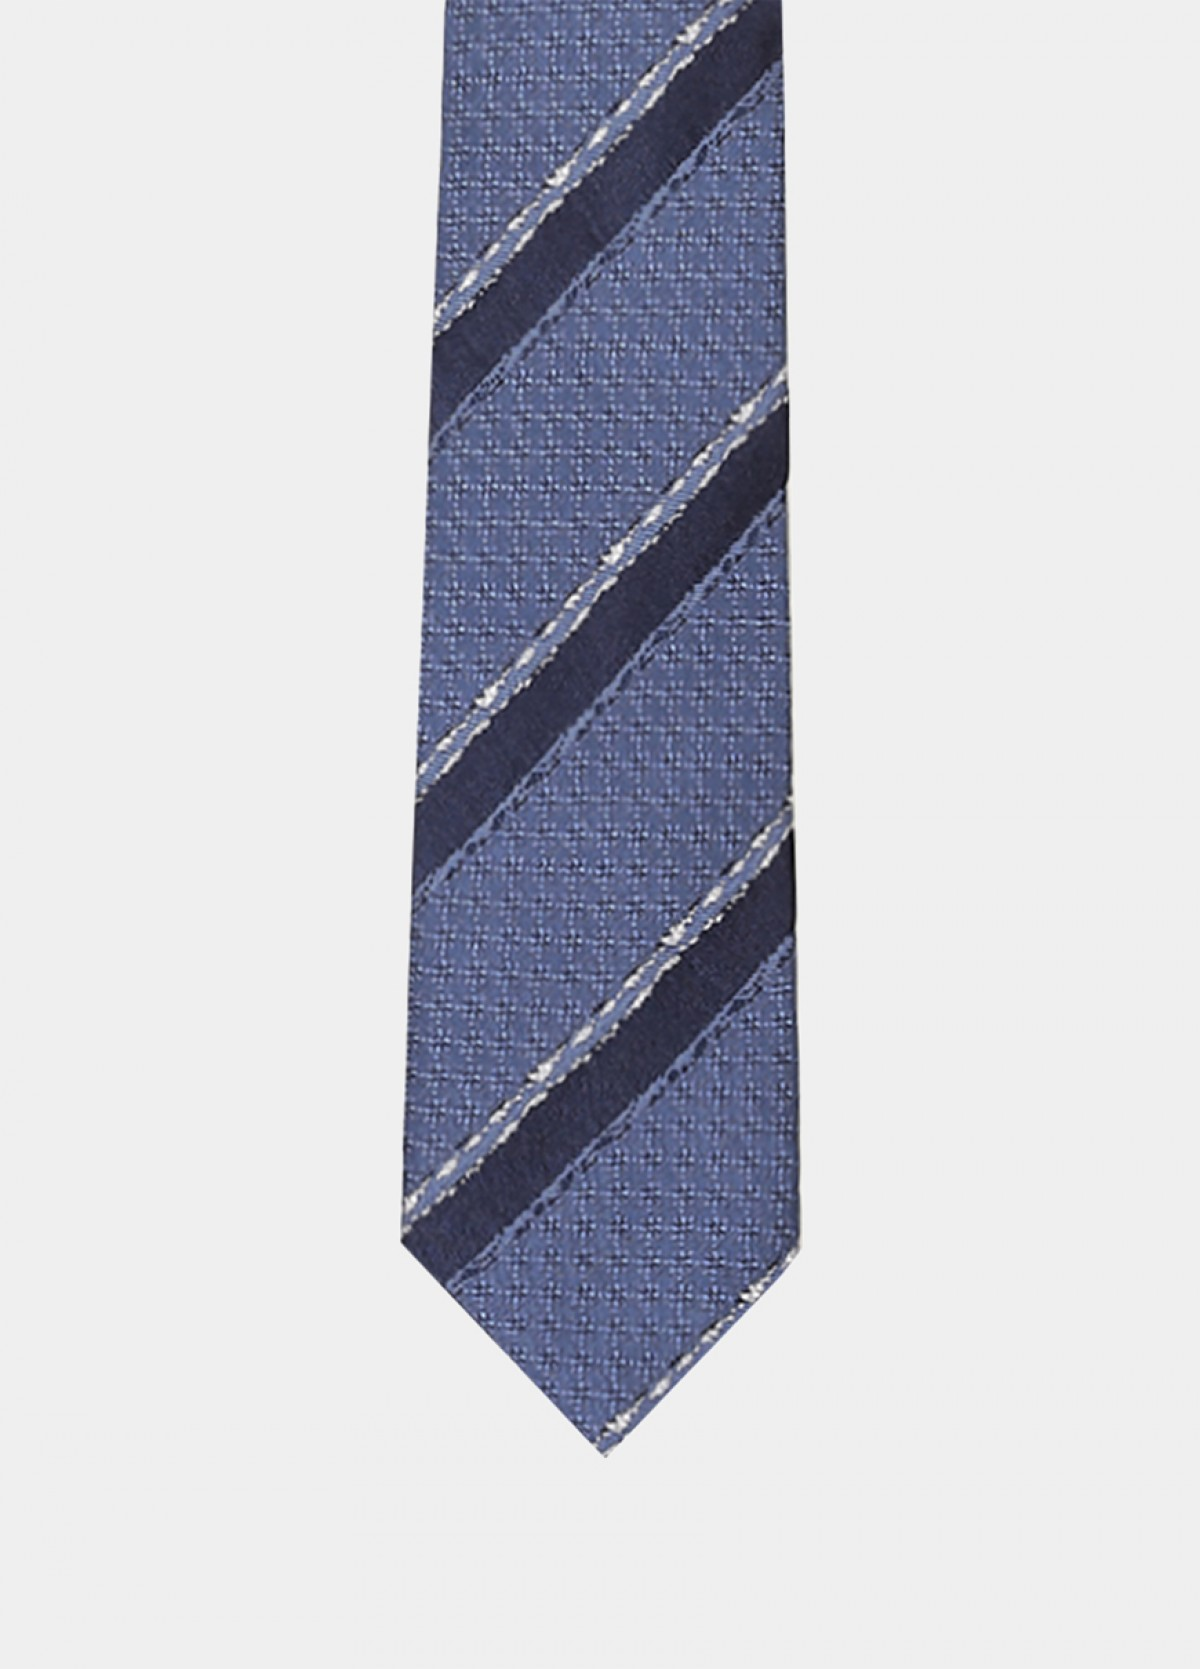 The Blue Stain Resistant Tie